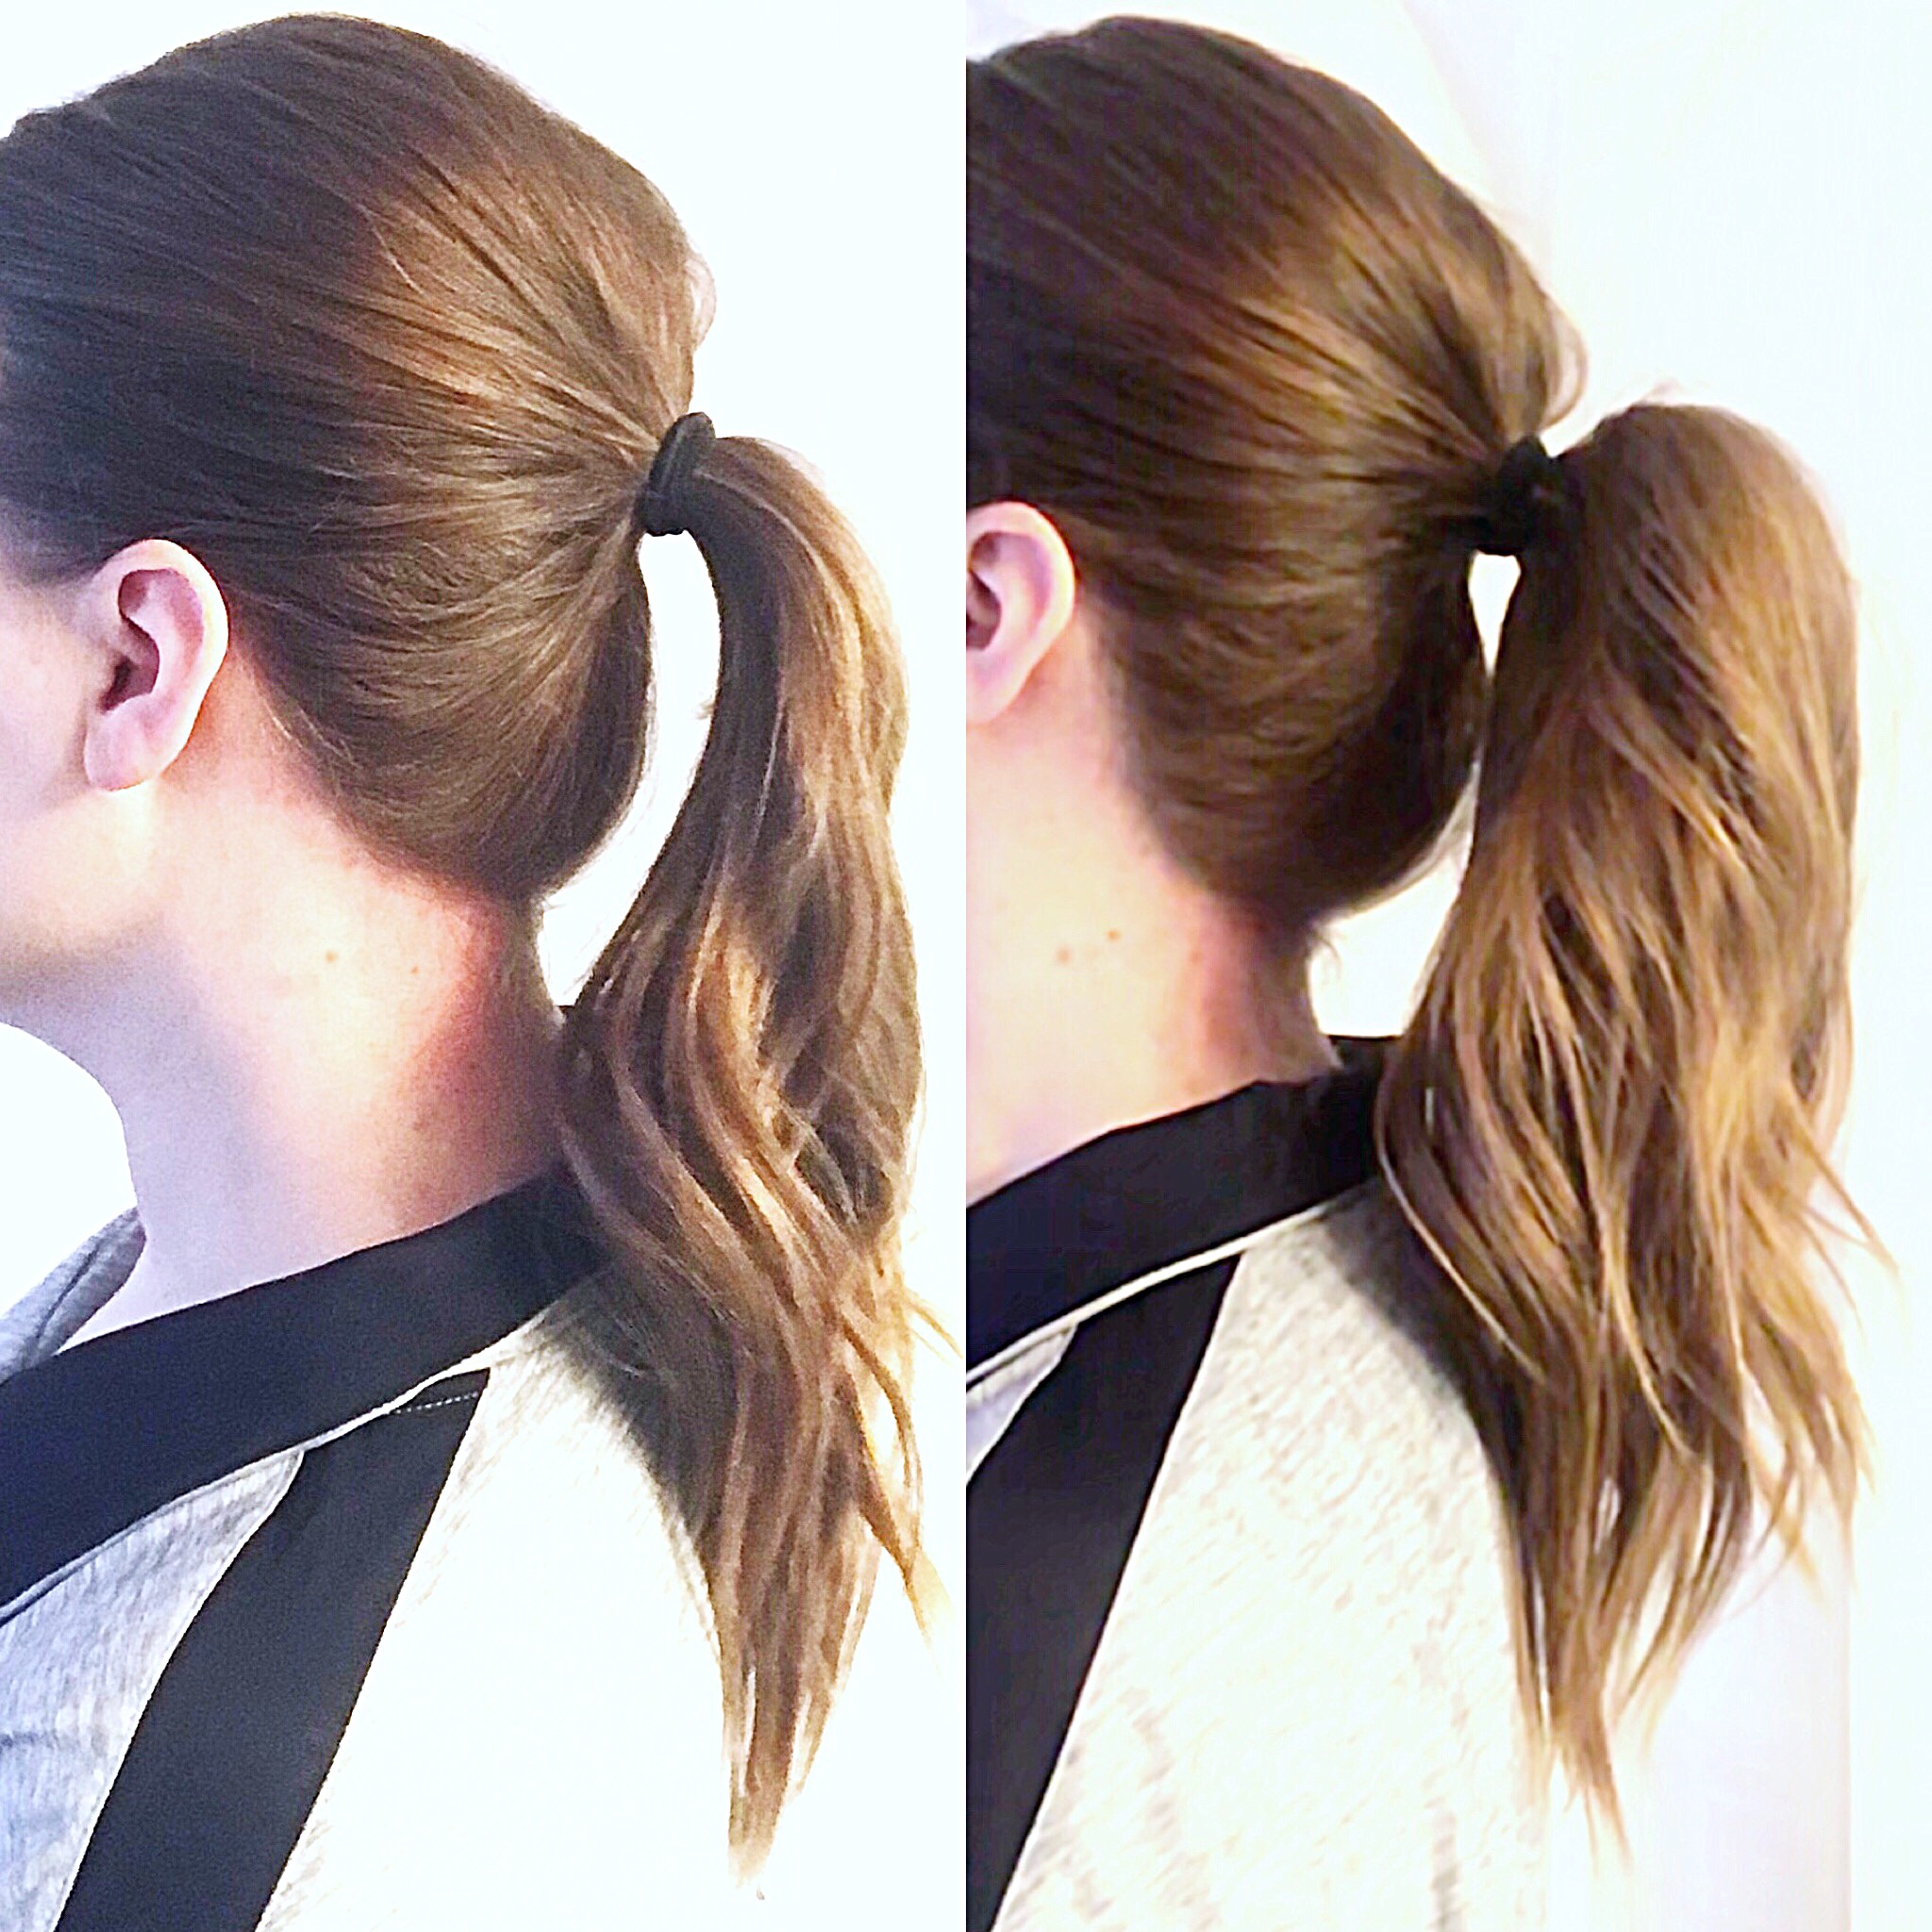 Check out the difference between these two ponytails. The only difference is some teasing and clips, no extensions required!